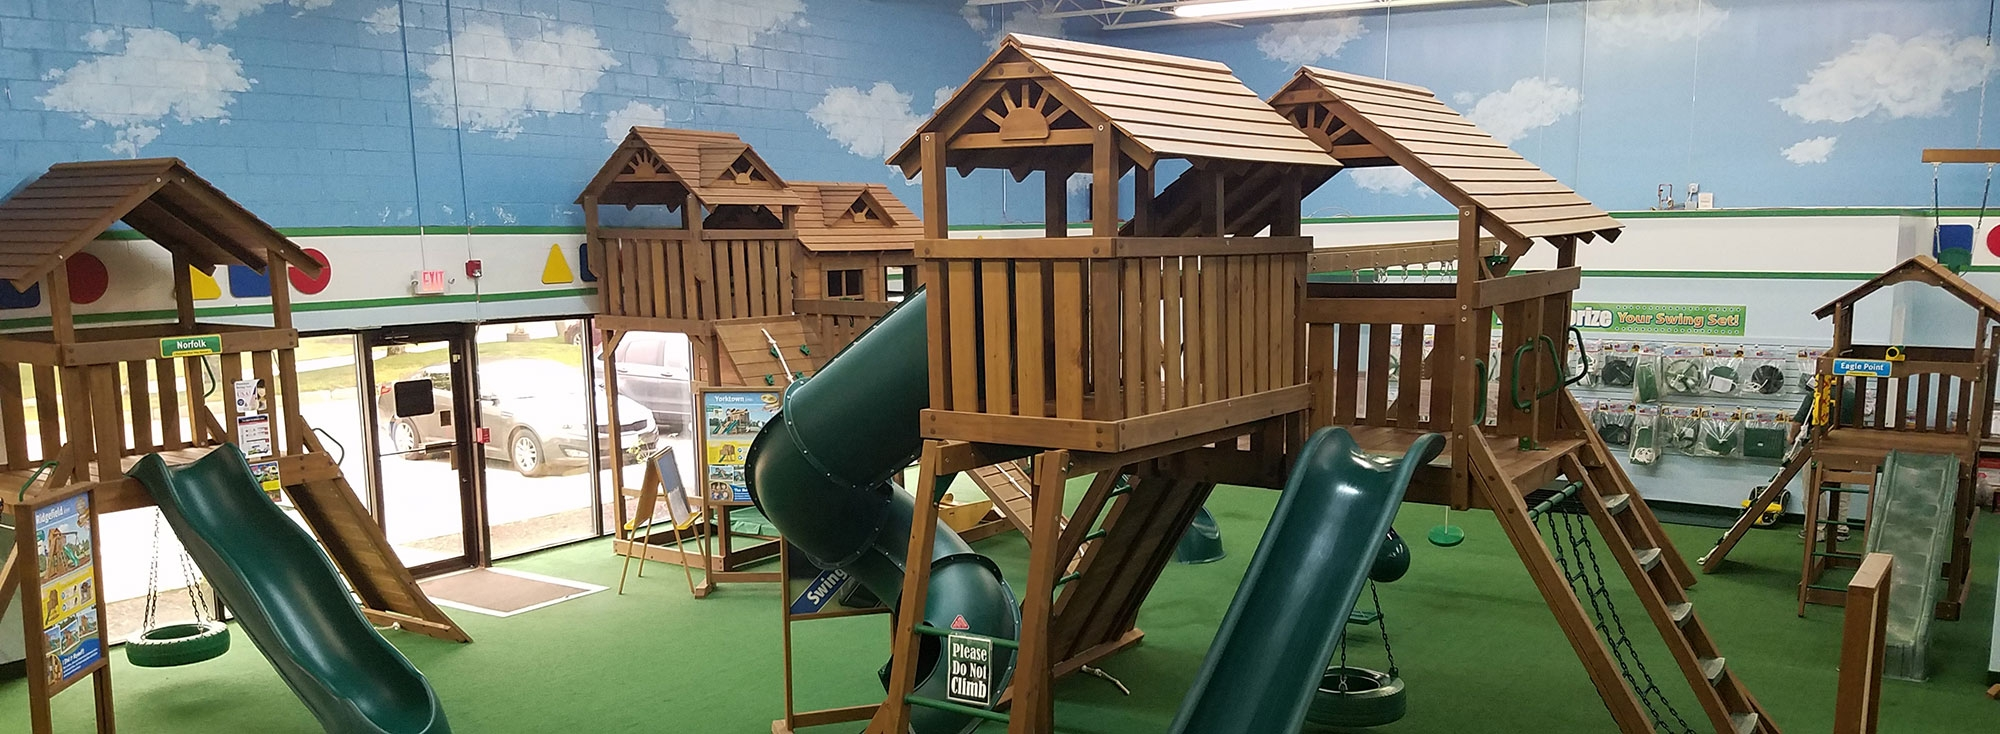 Visit a Creative Playthings showroom swing sets playset